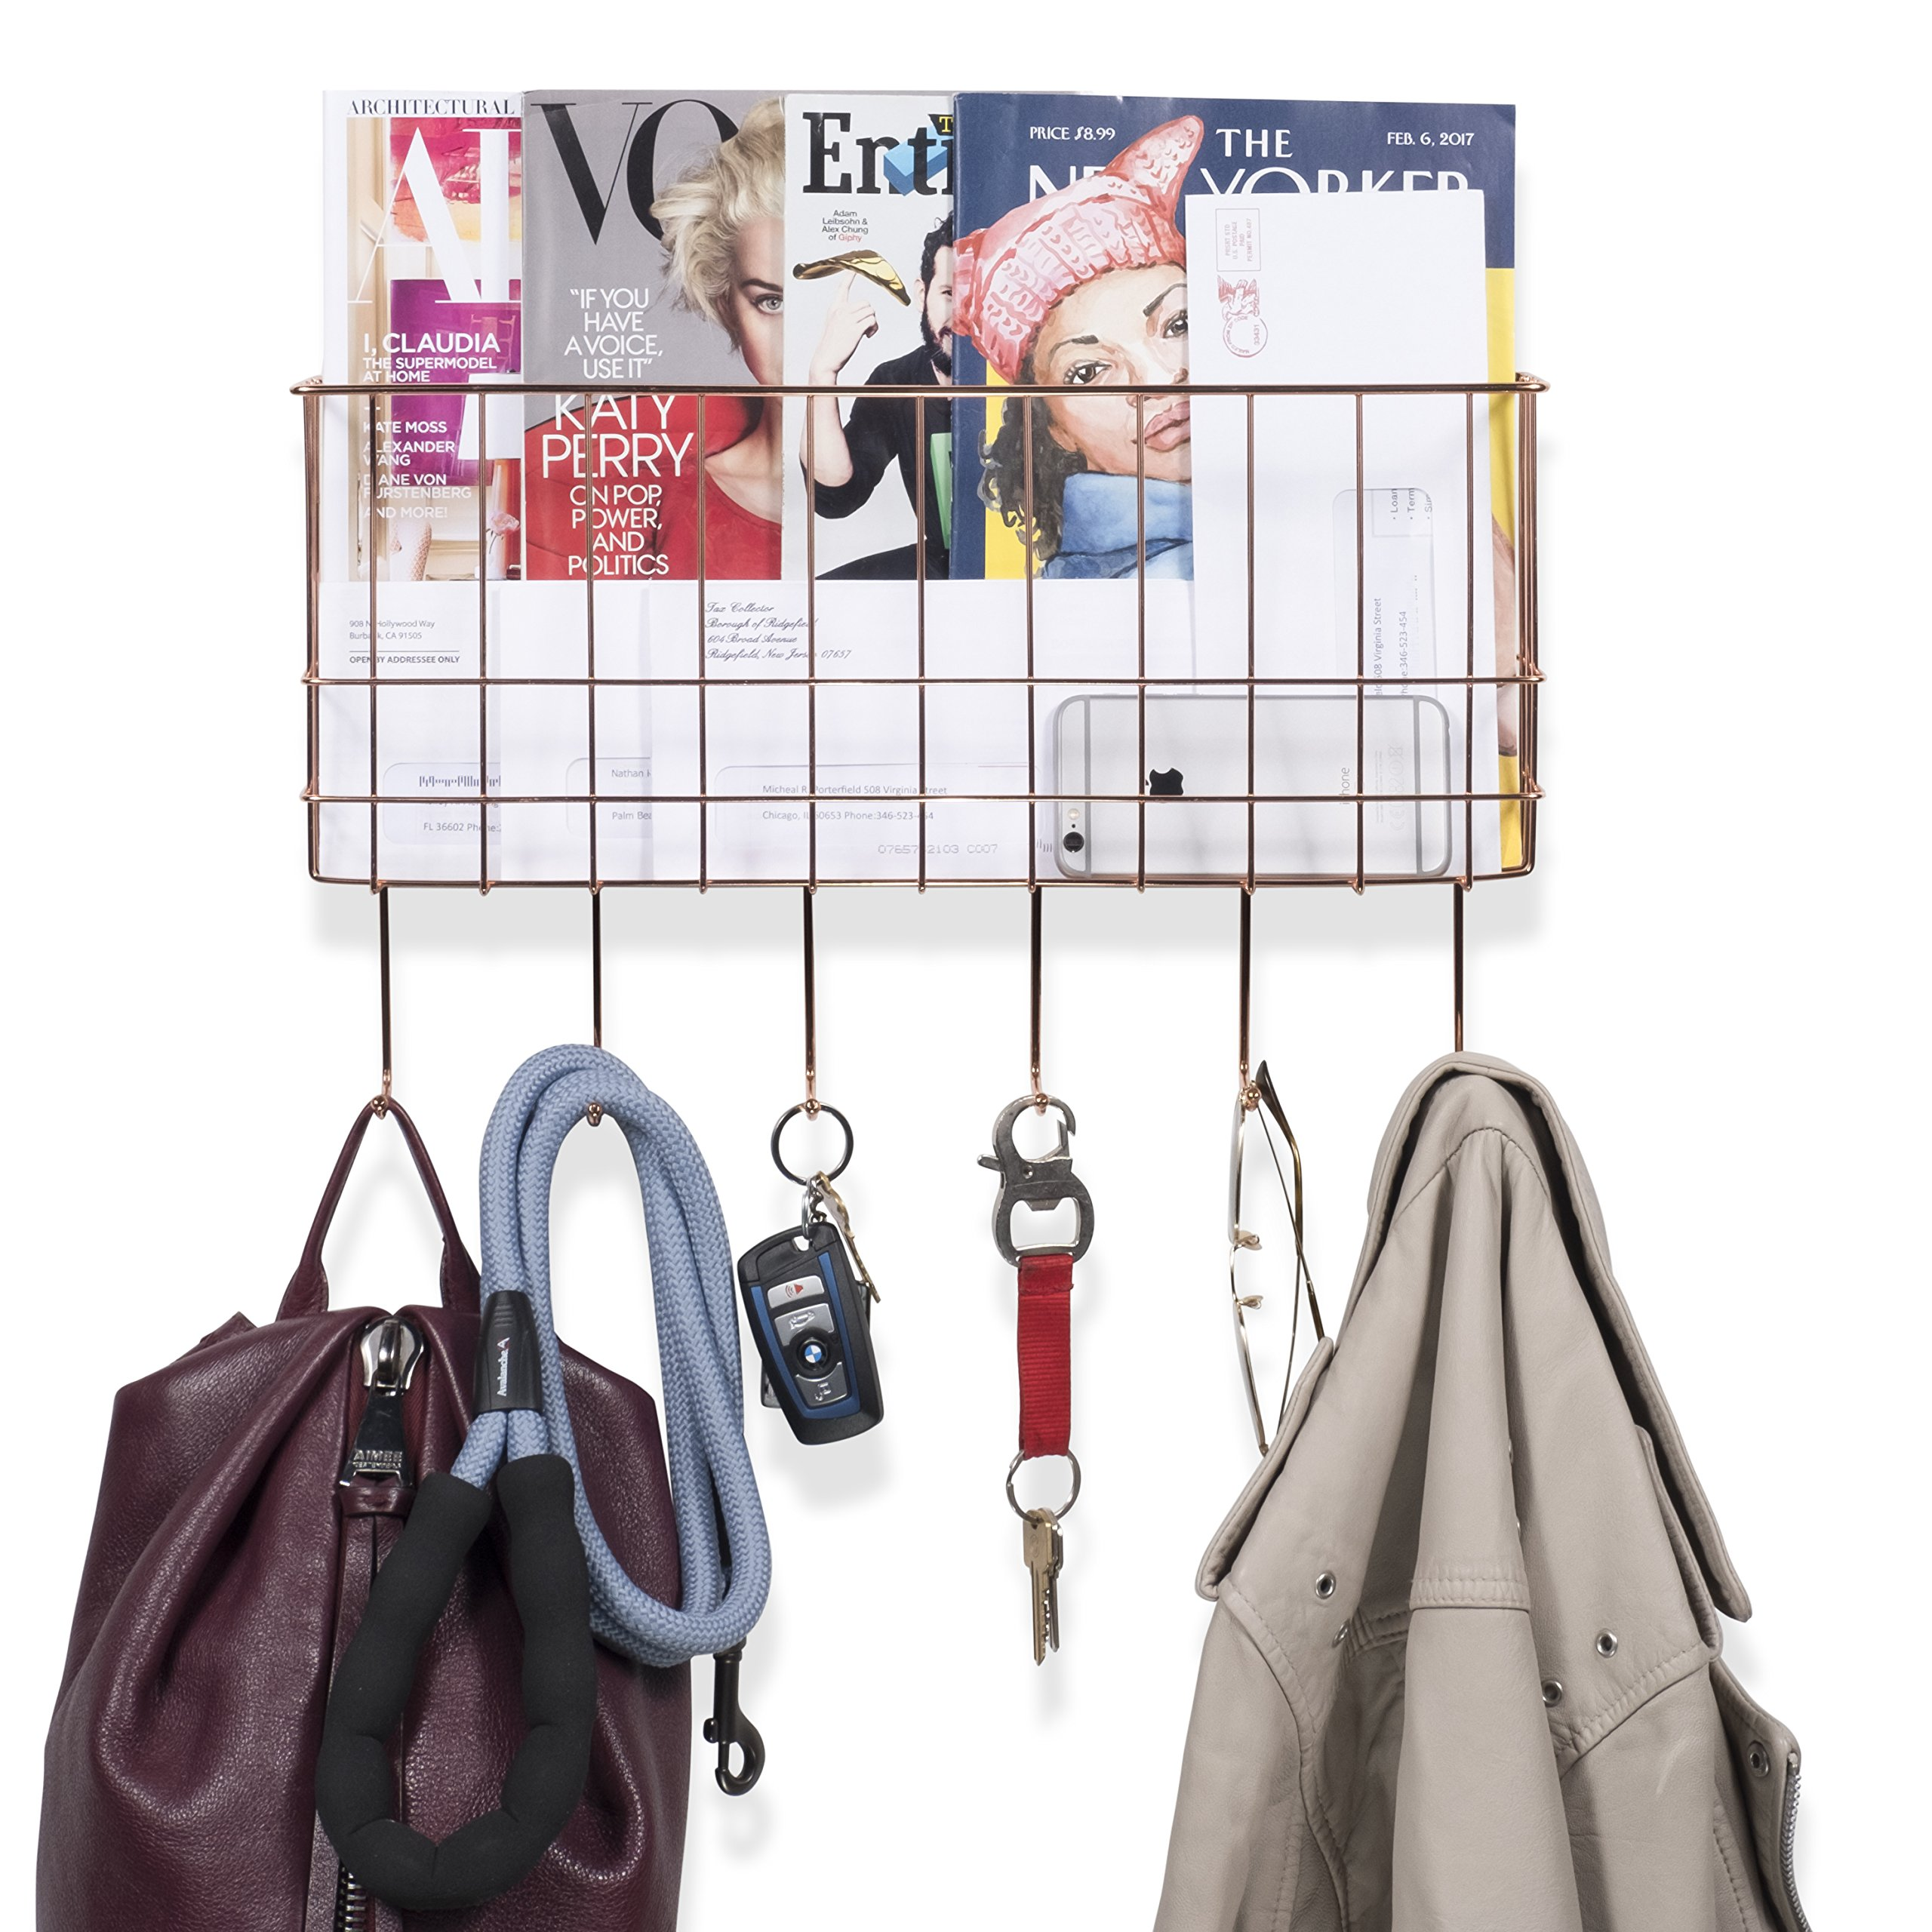 WALL35 Sicily Unique Metal Wire Basket - Wall Mounted Entryway Organizer - Key Holder - Coat Rack with Hooks - Mail and Magazine Holder (Copper) by Wall35 (Image #2)